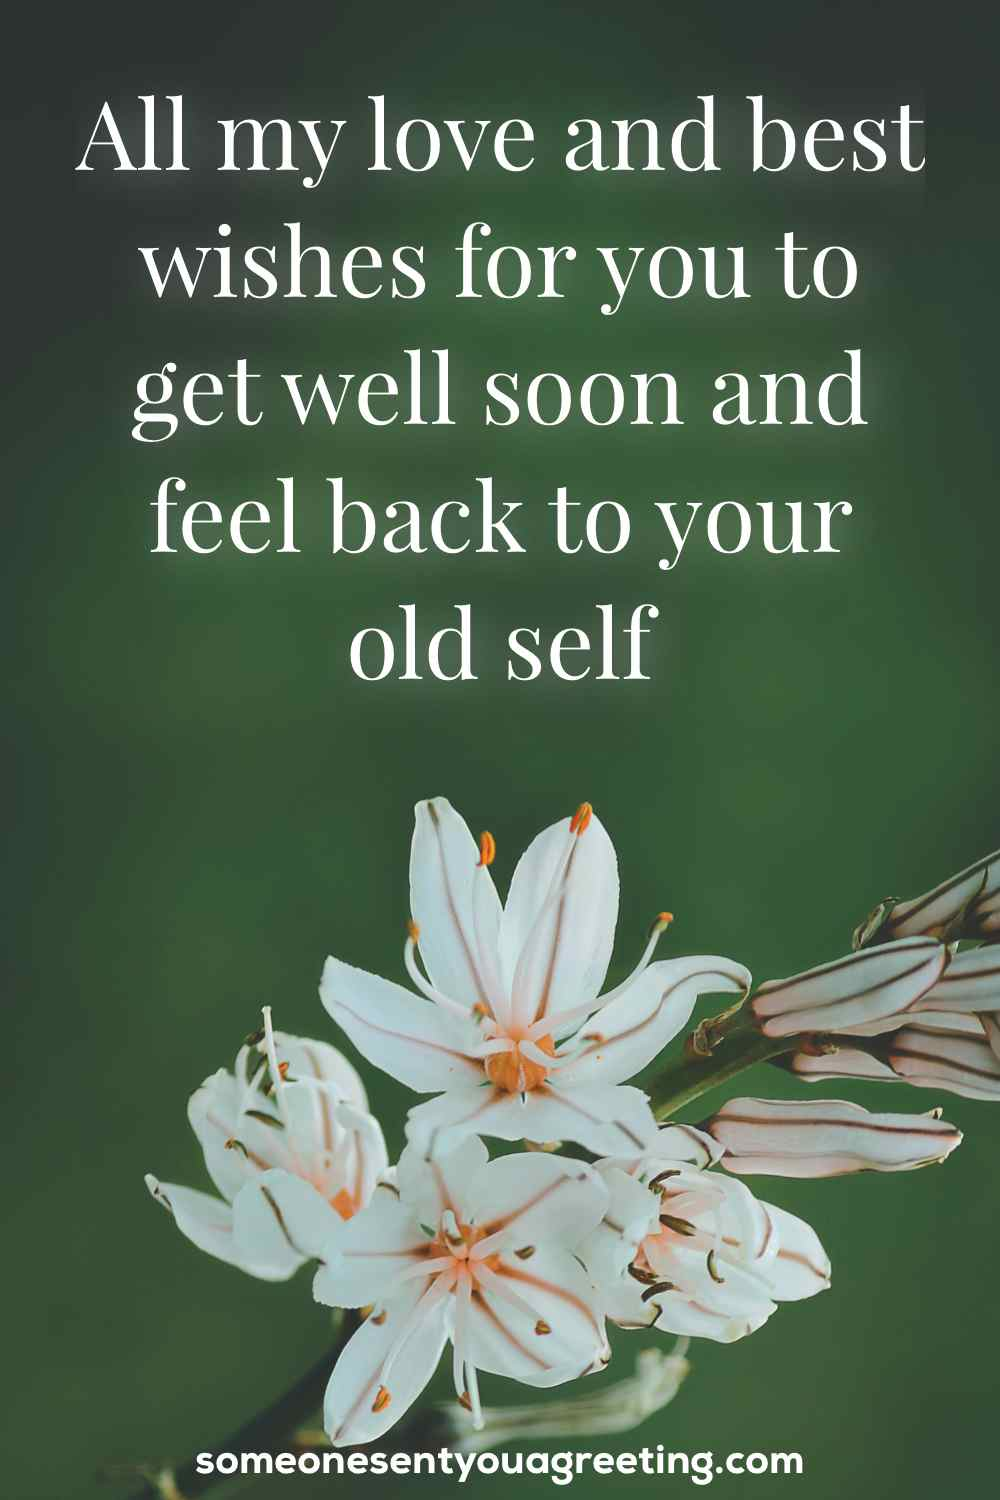 get well and feel better soon message